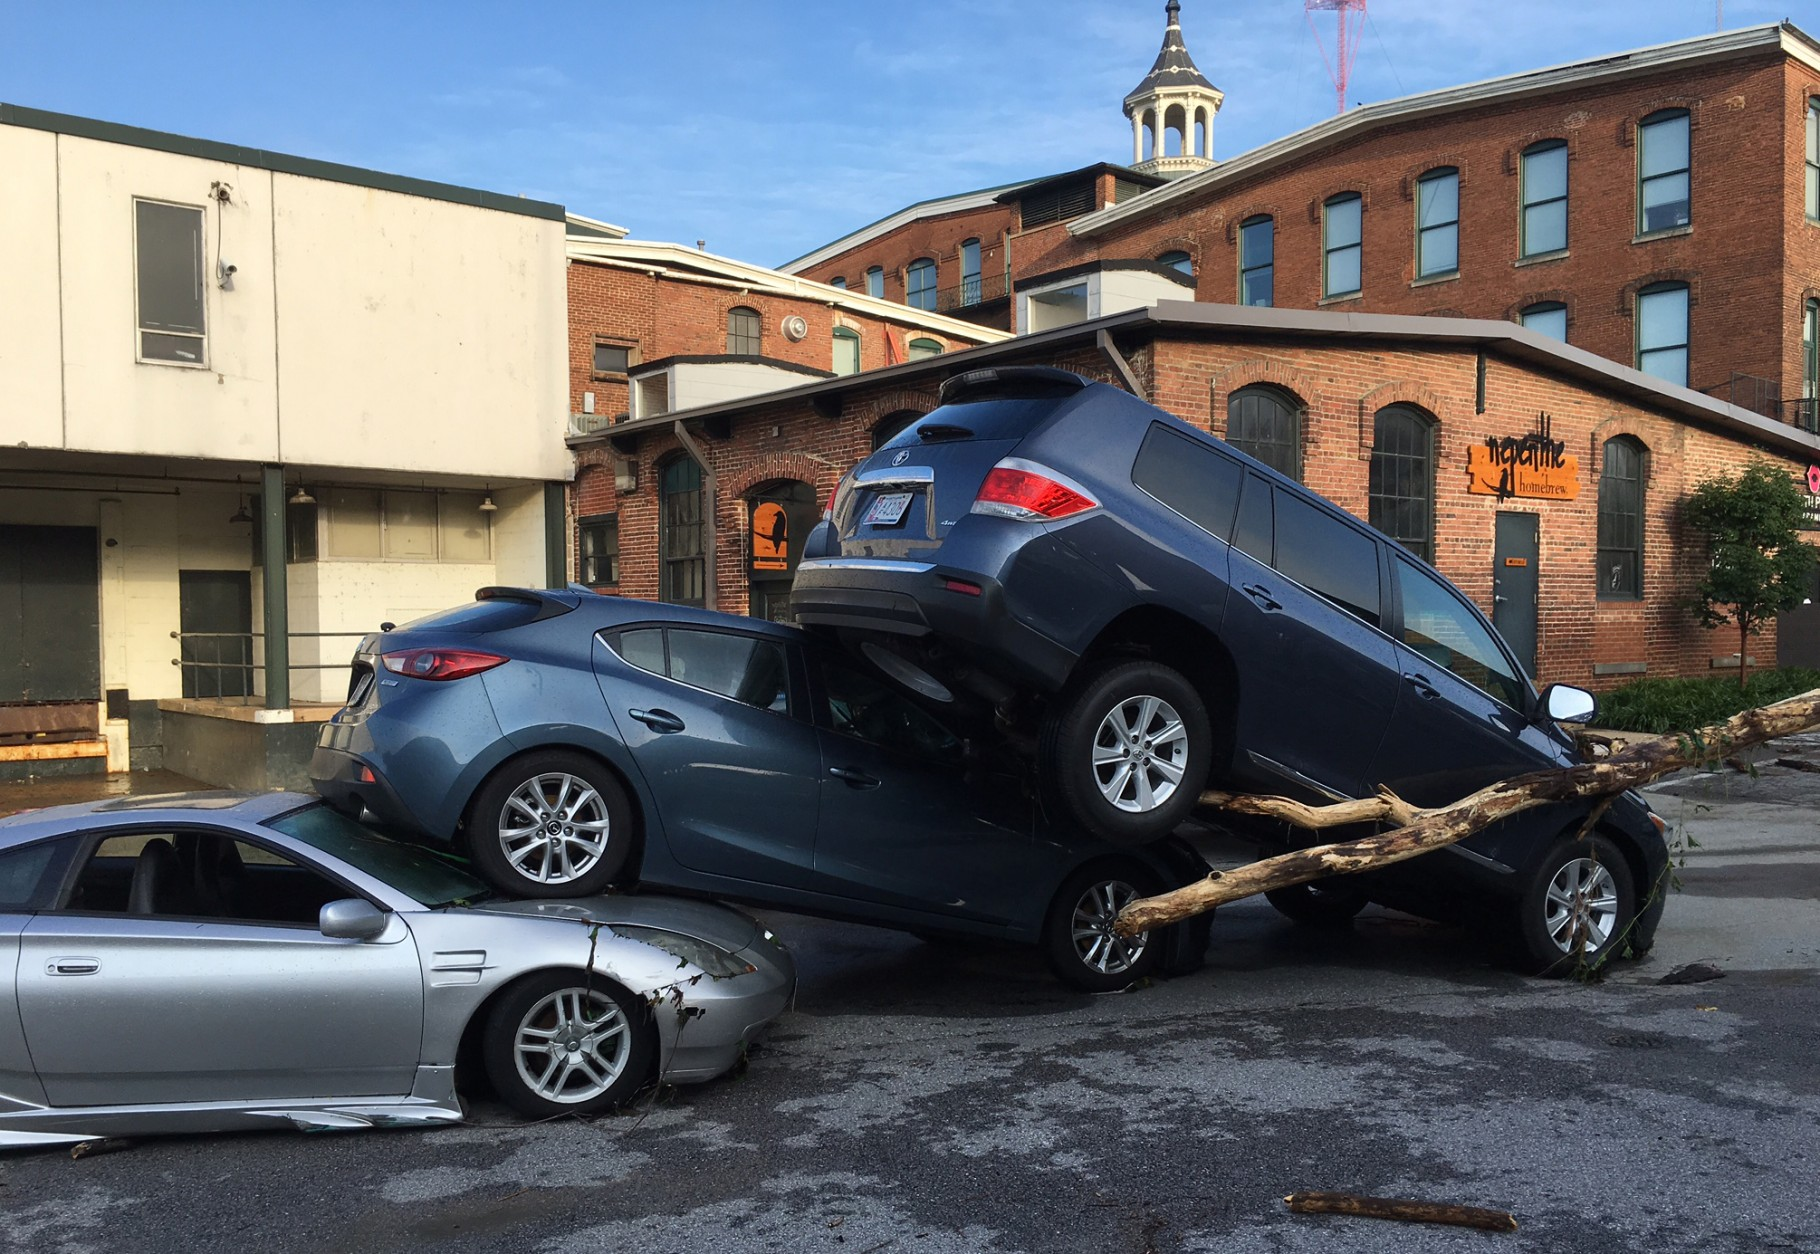 Cars are piled on top of each other in the Meadow Mill parking lot along the Jones Falls in Baltimore on Sunday, July 31, 2016, following Saturday night's storms. (Jerry Jackson/The Baltimore Sun via AP)